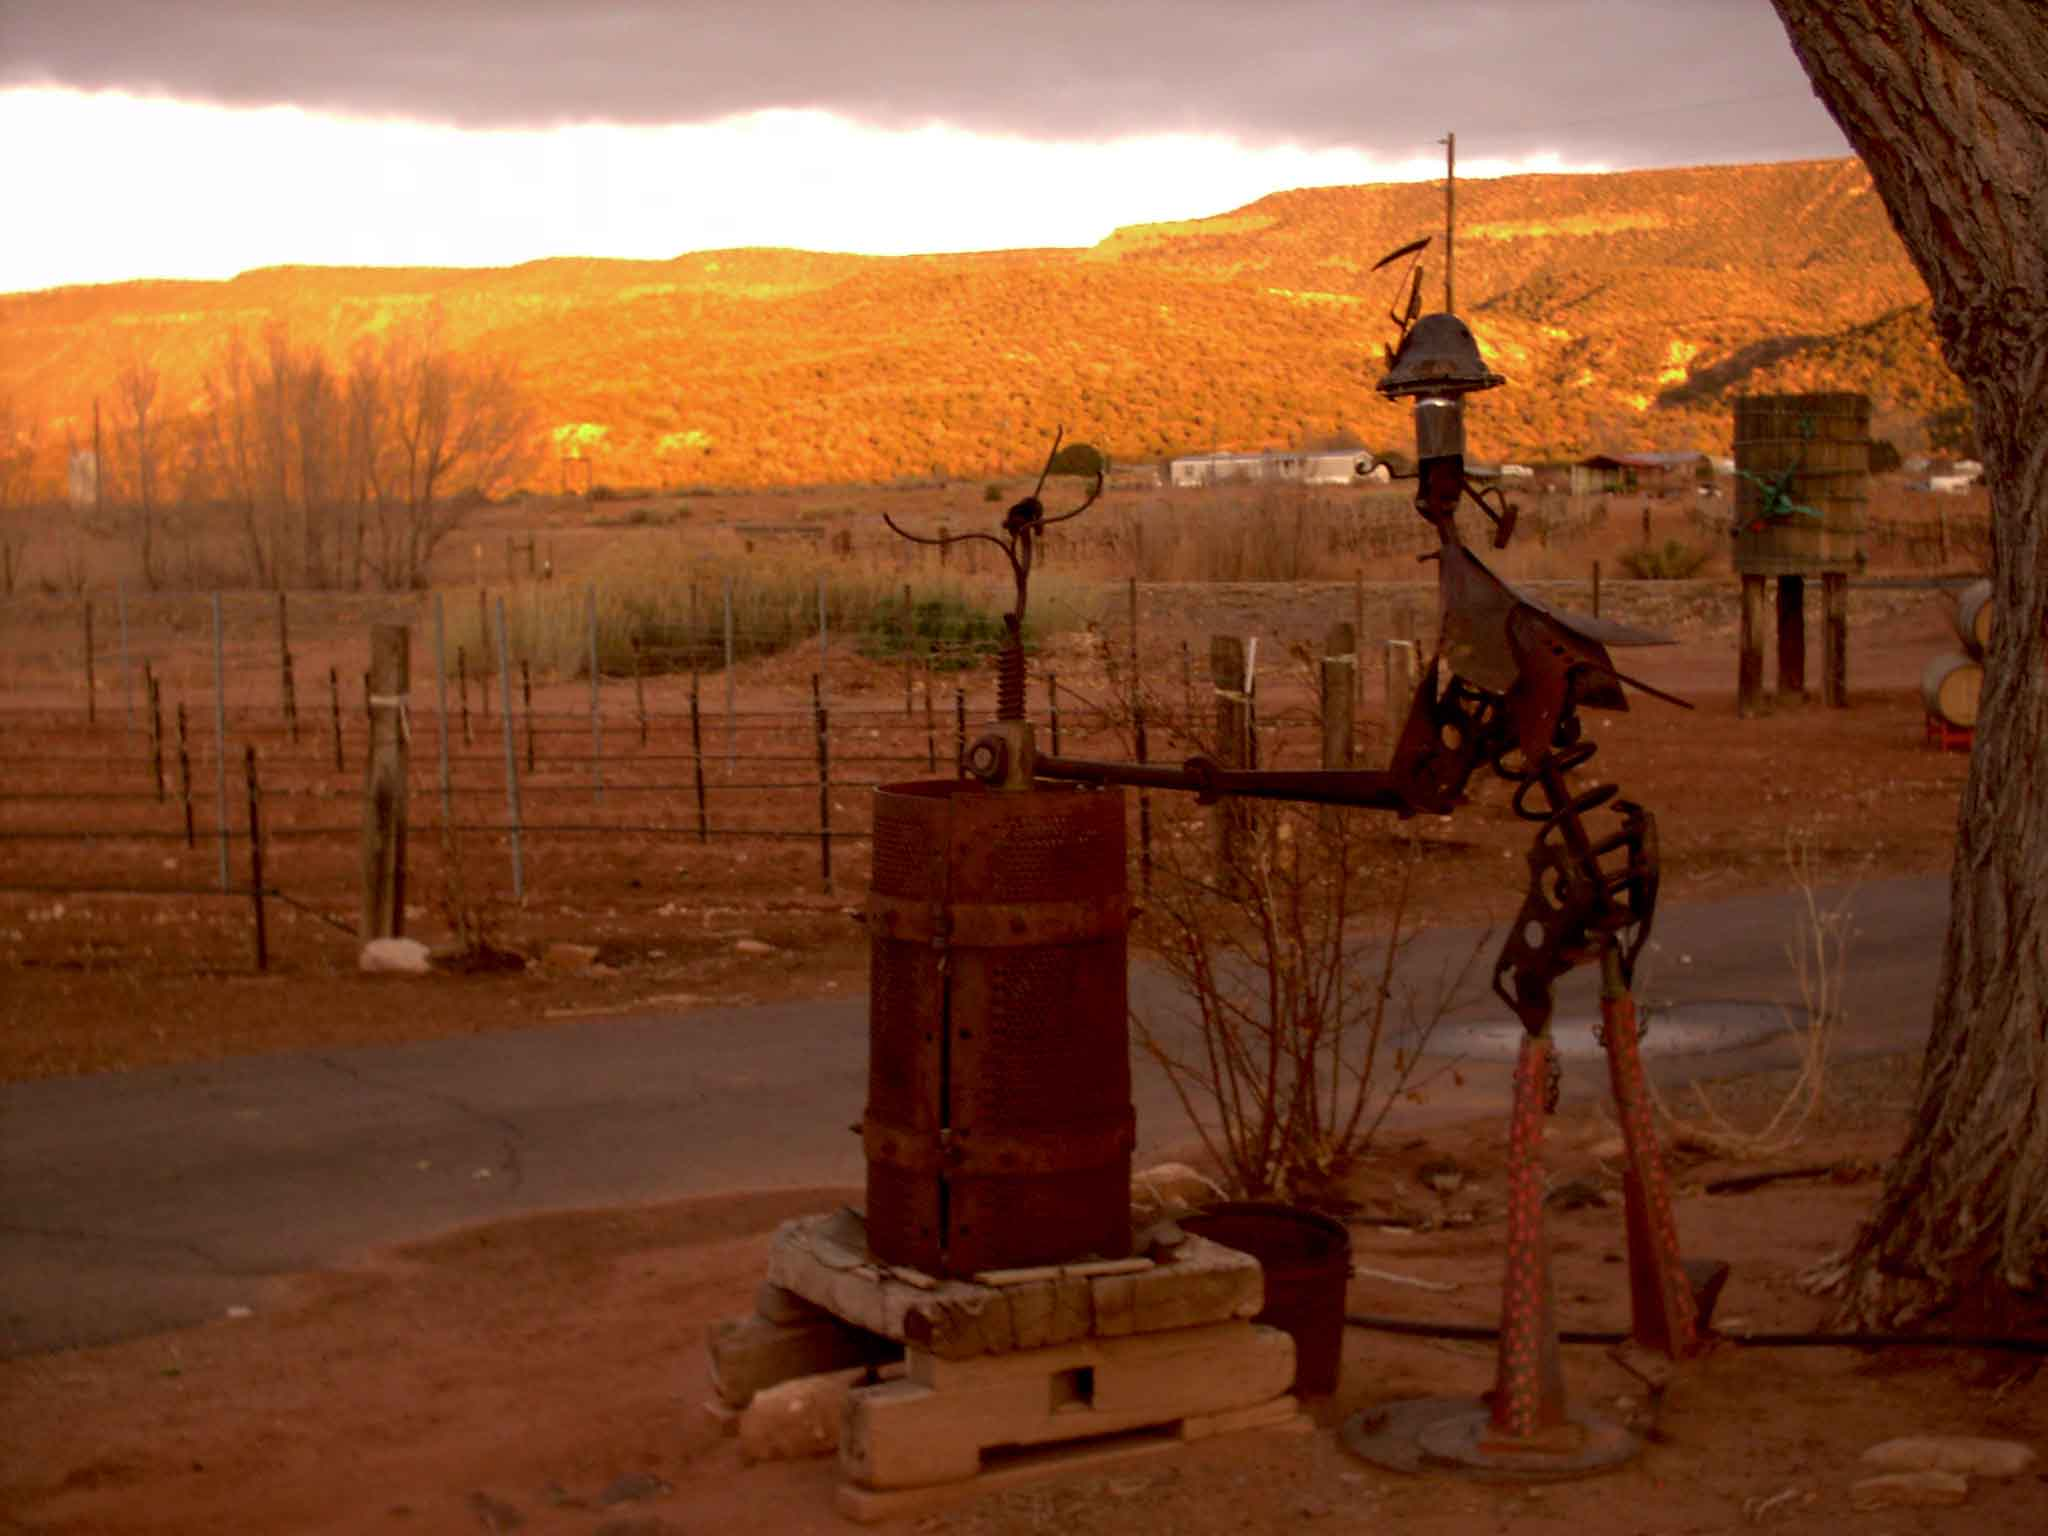 A metal sculpture in the foreground with a sunset in the background